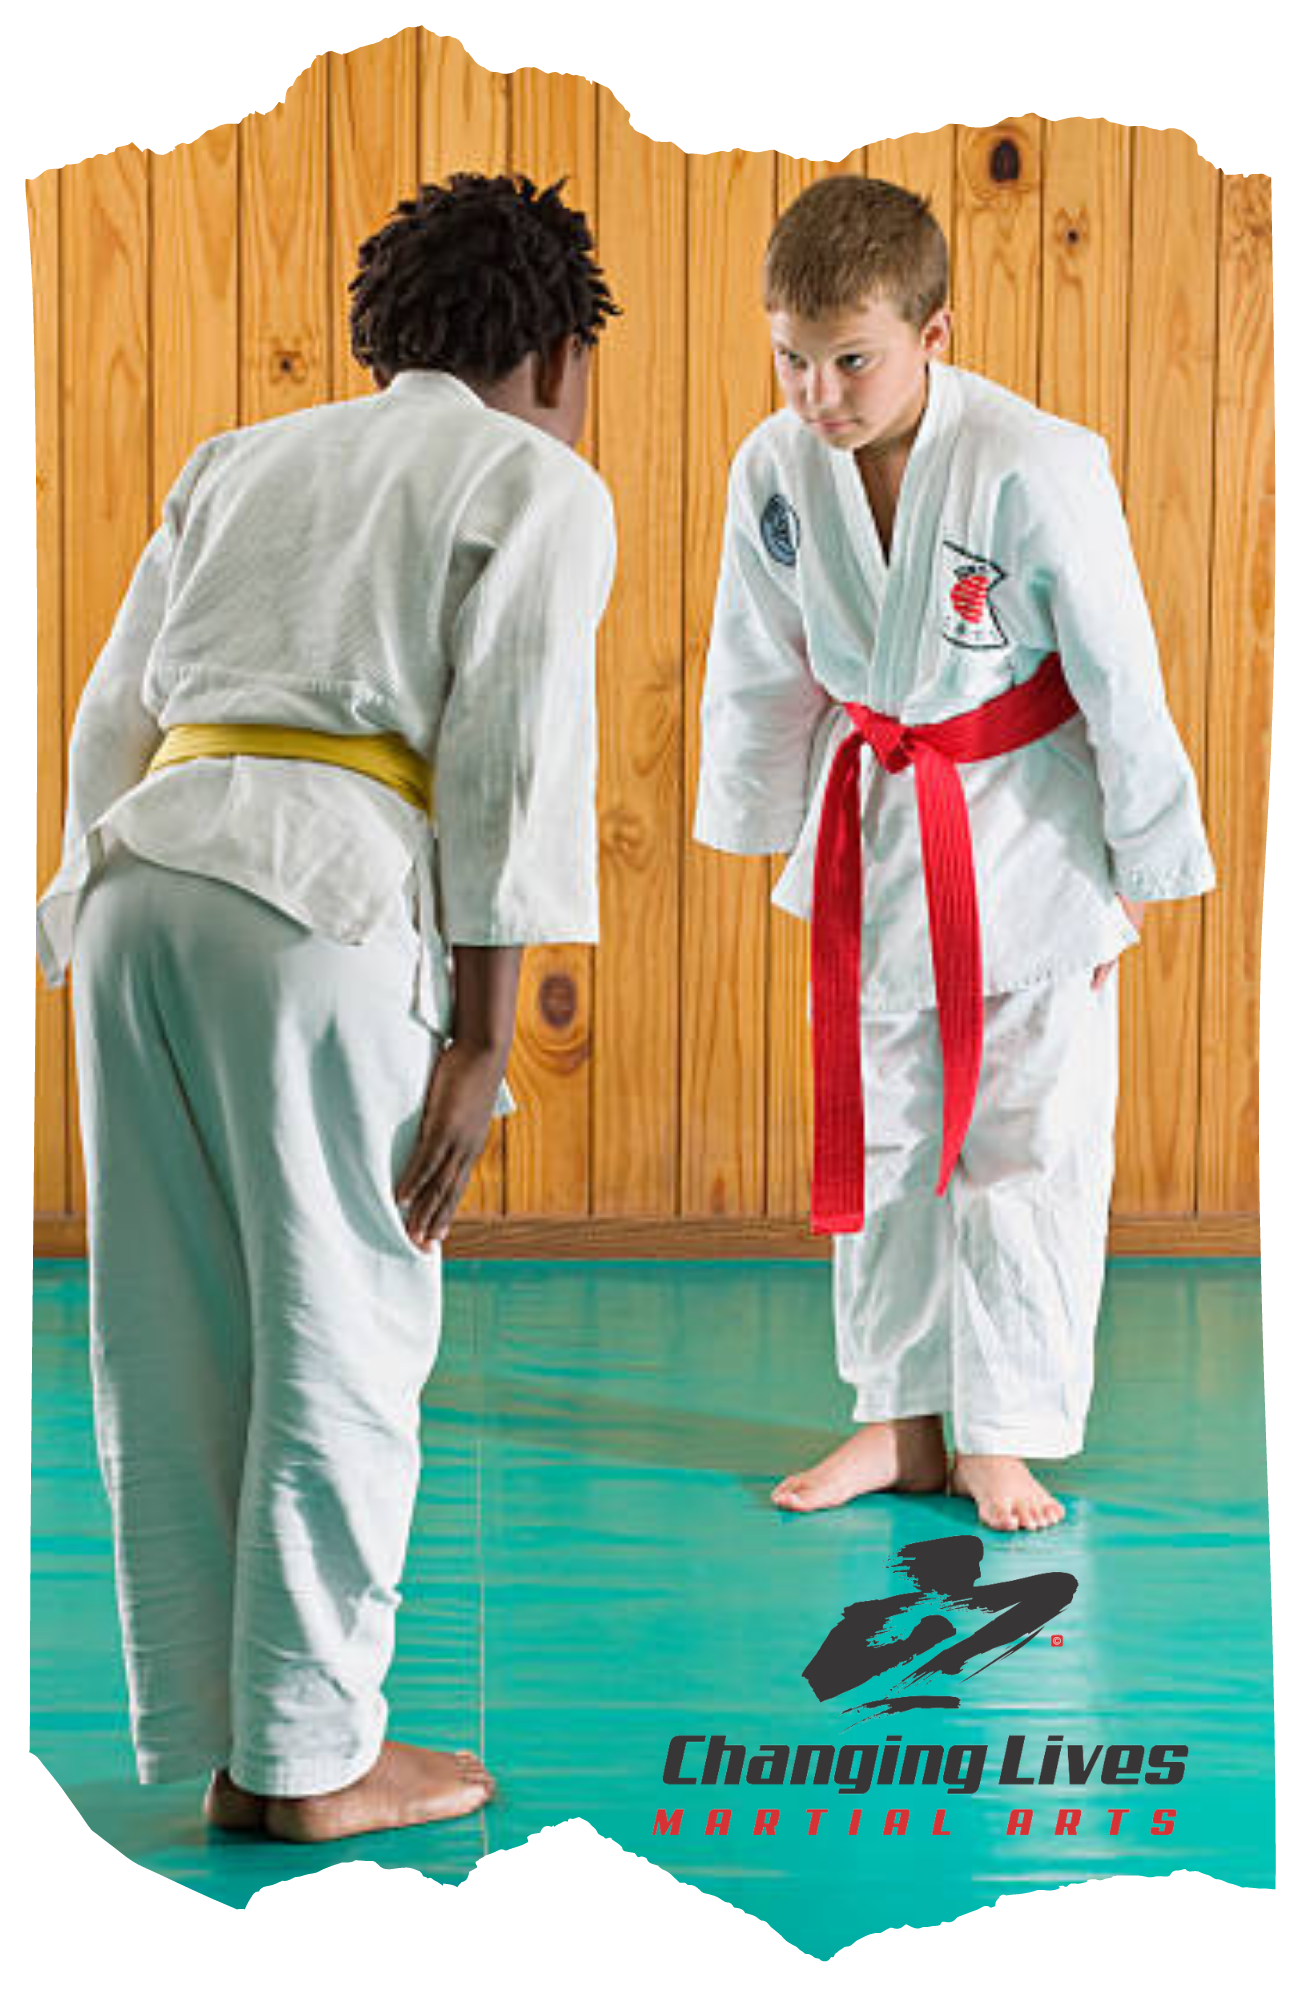 Karate students bow in respect